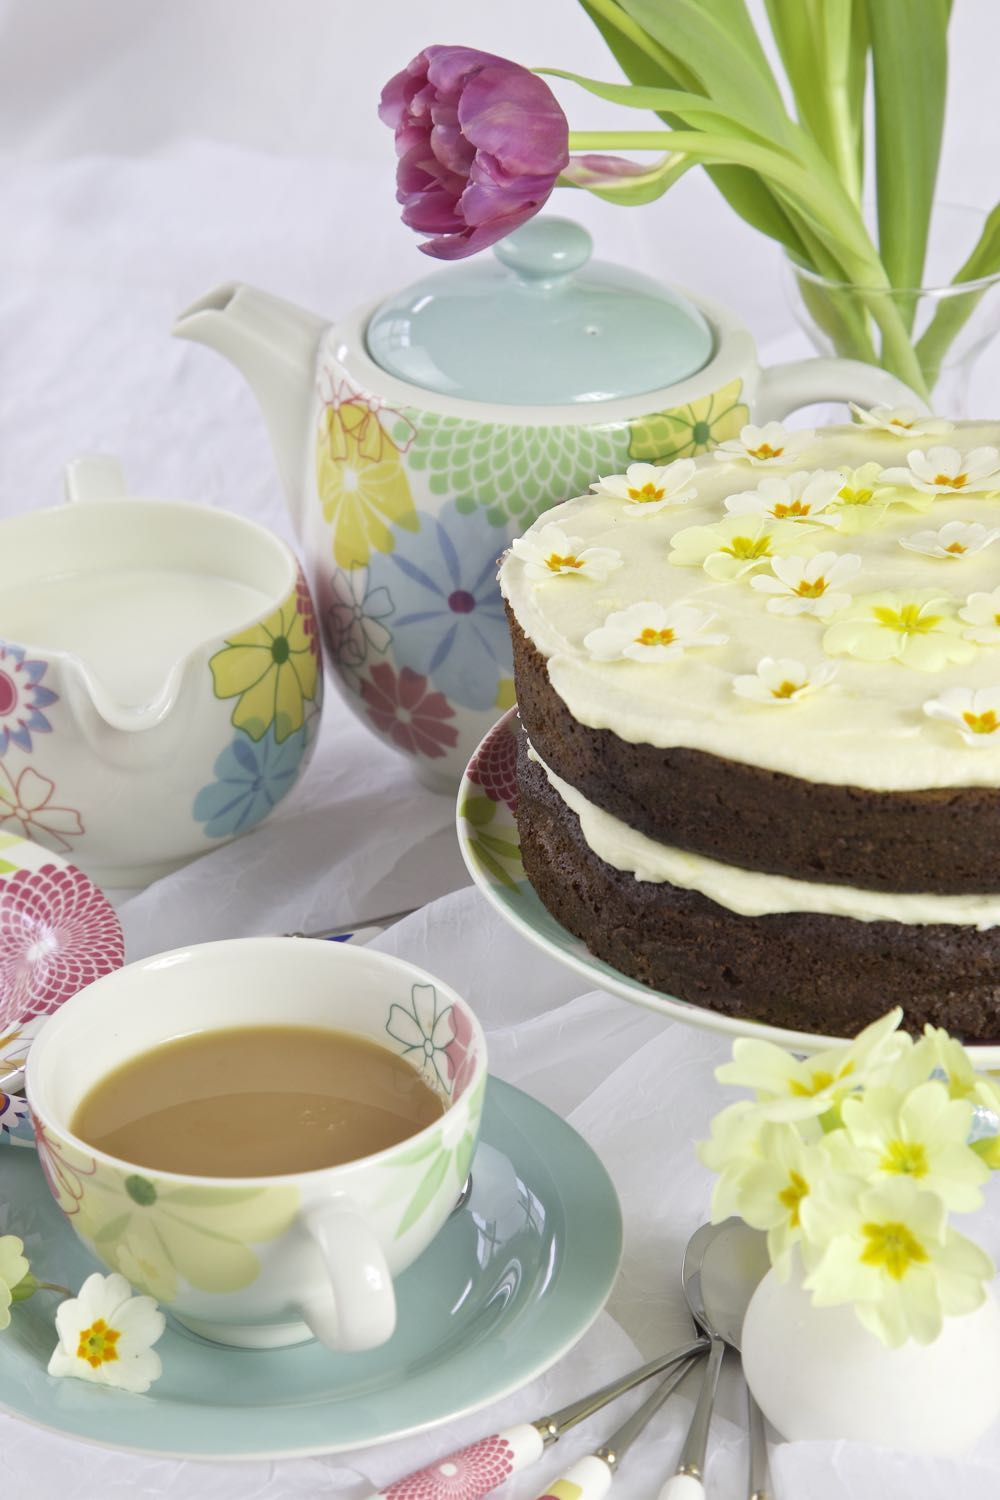 Ginger Cake topped with Gin Icing flavoured with lemon, served with tea.